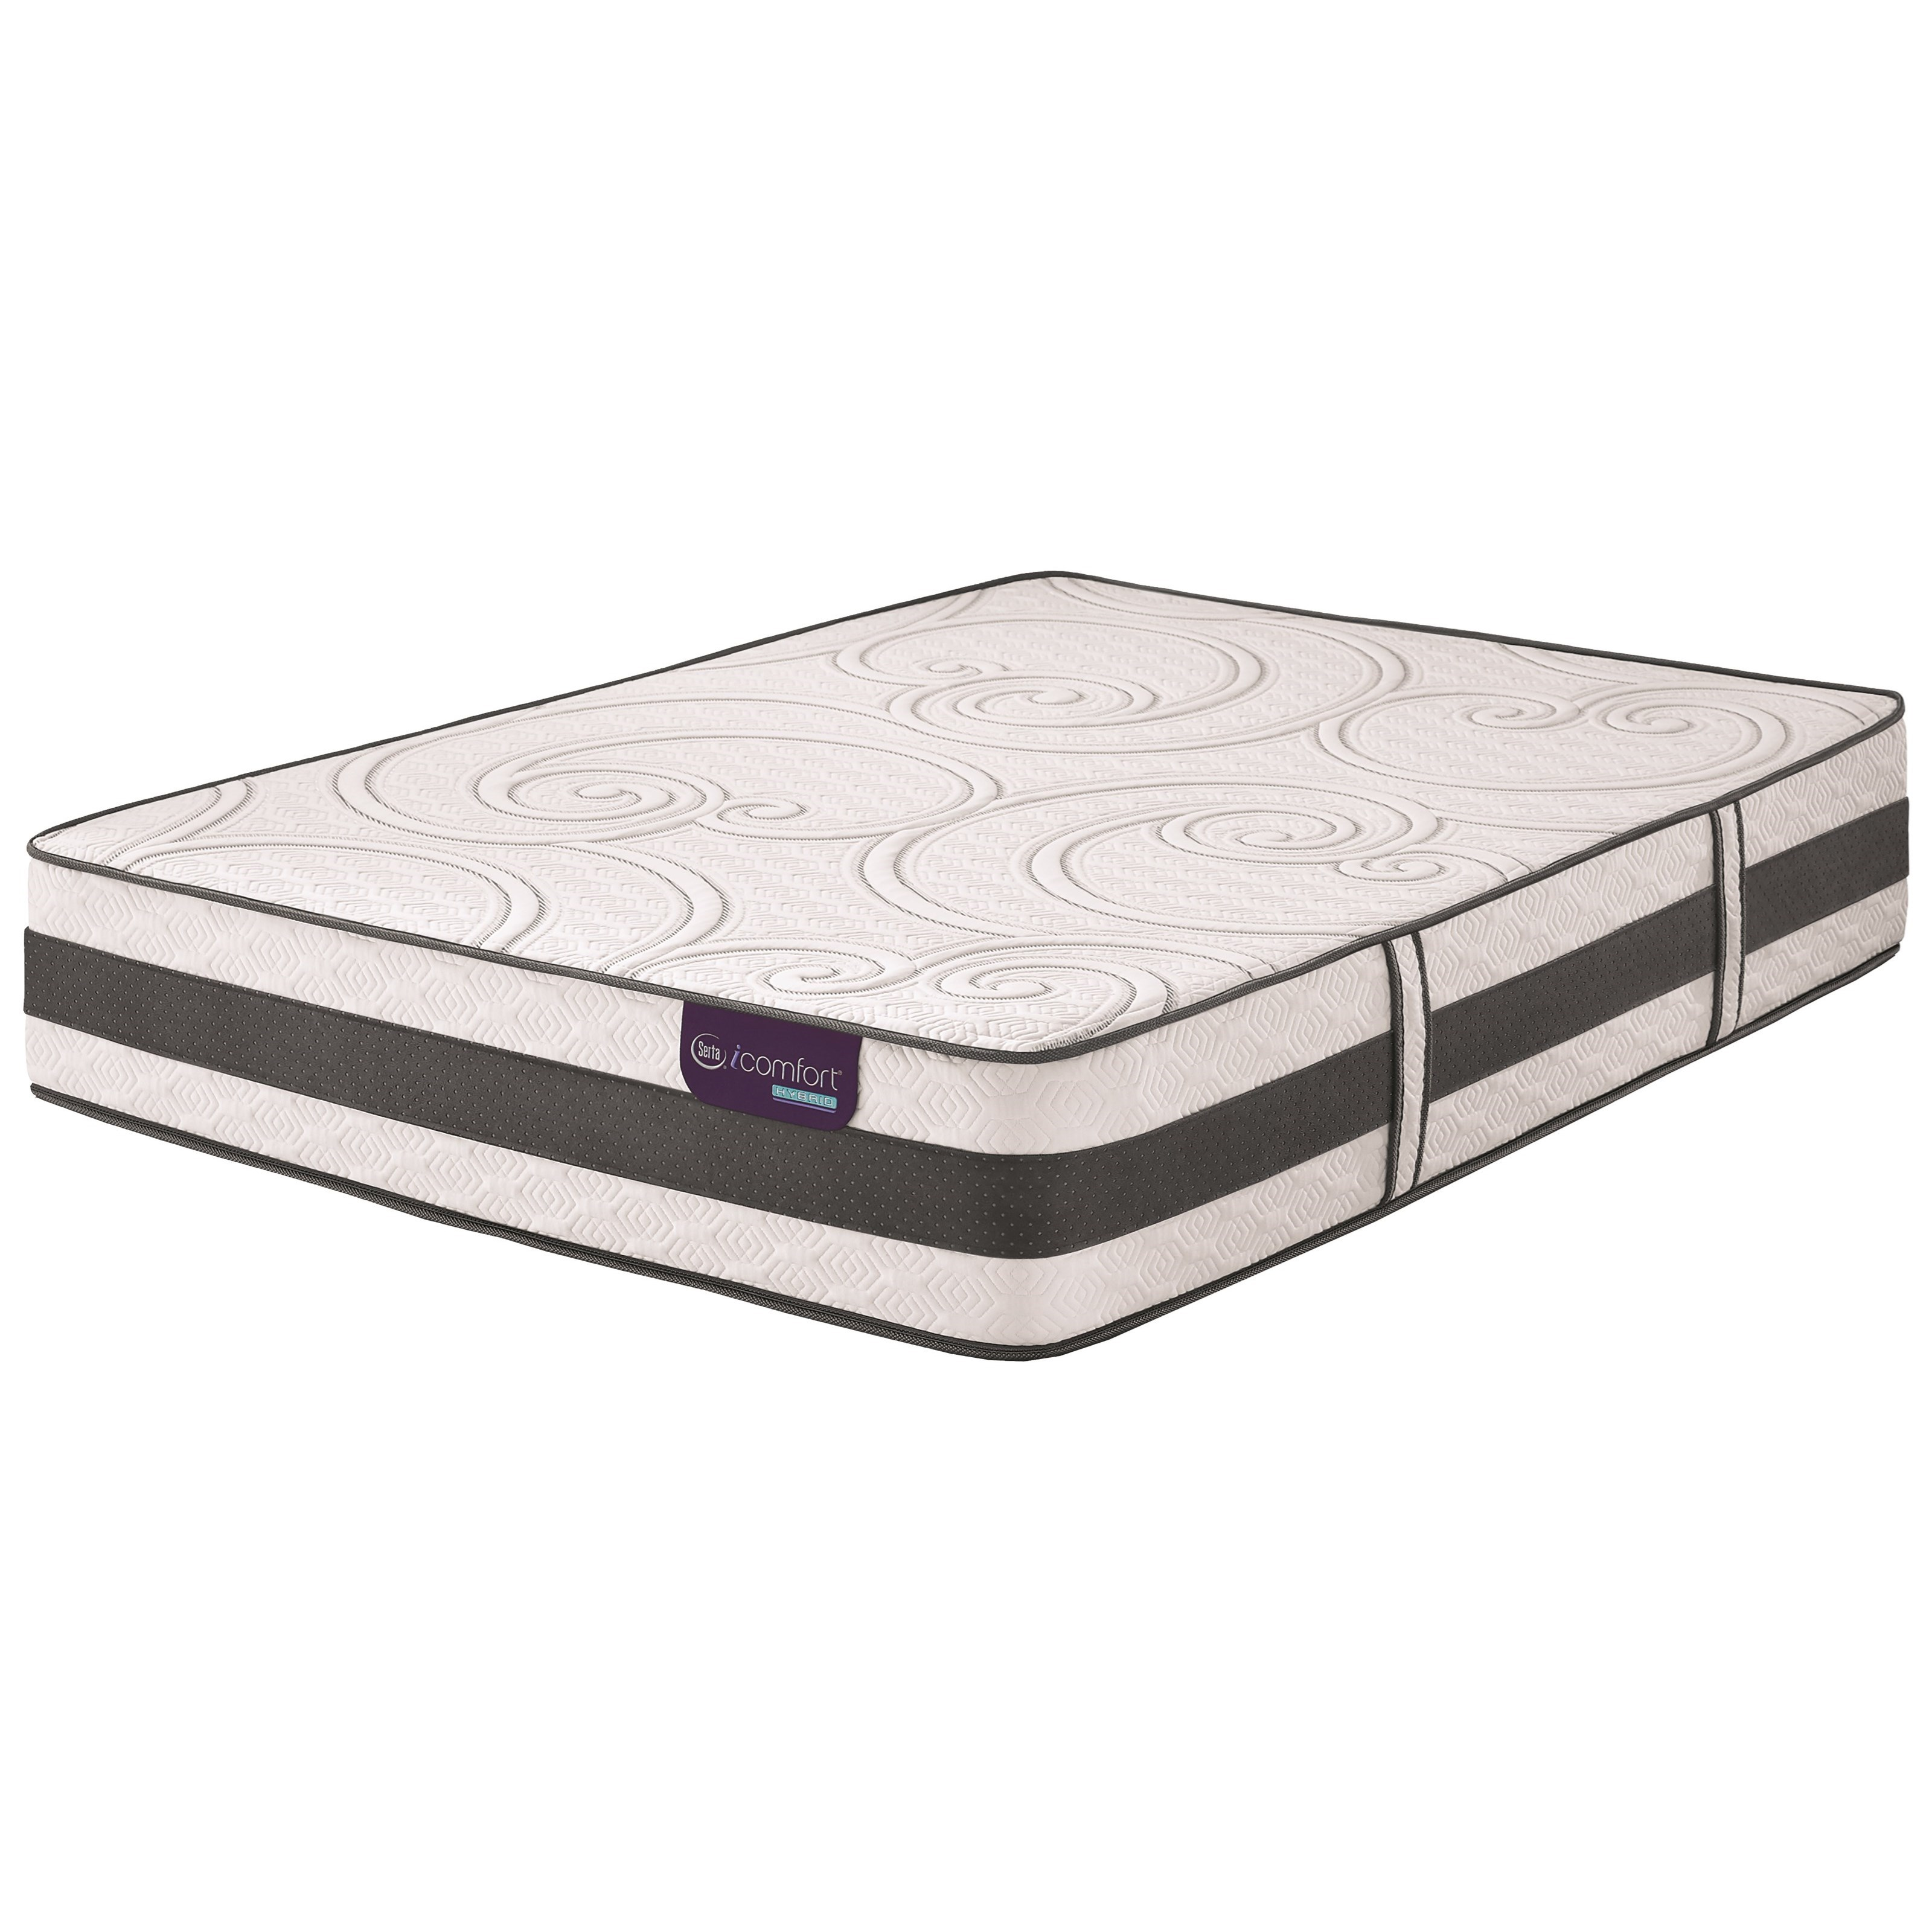 Serta iComfort Hybrid Discoverer Full Plush Hybrid Mattress - Item Number: DiscovererPlsh-F